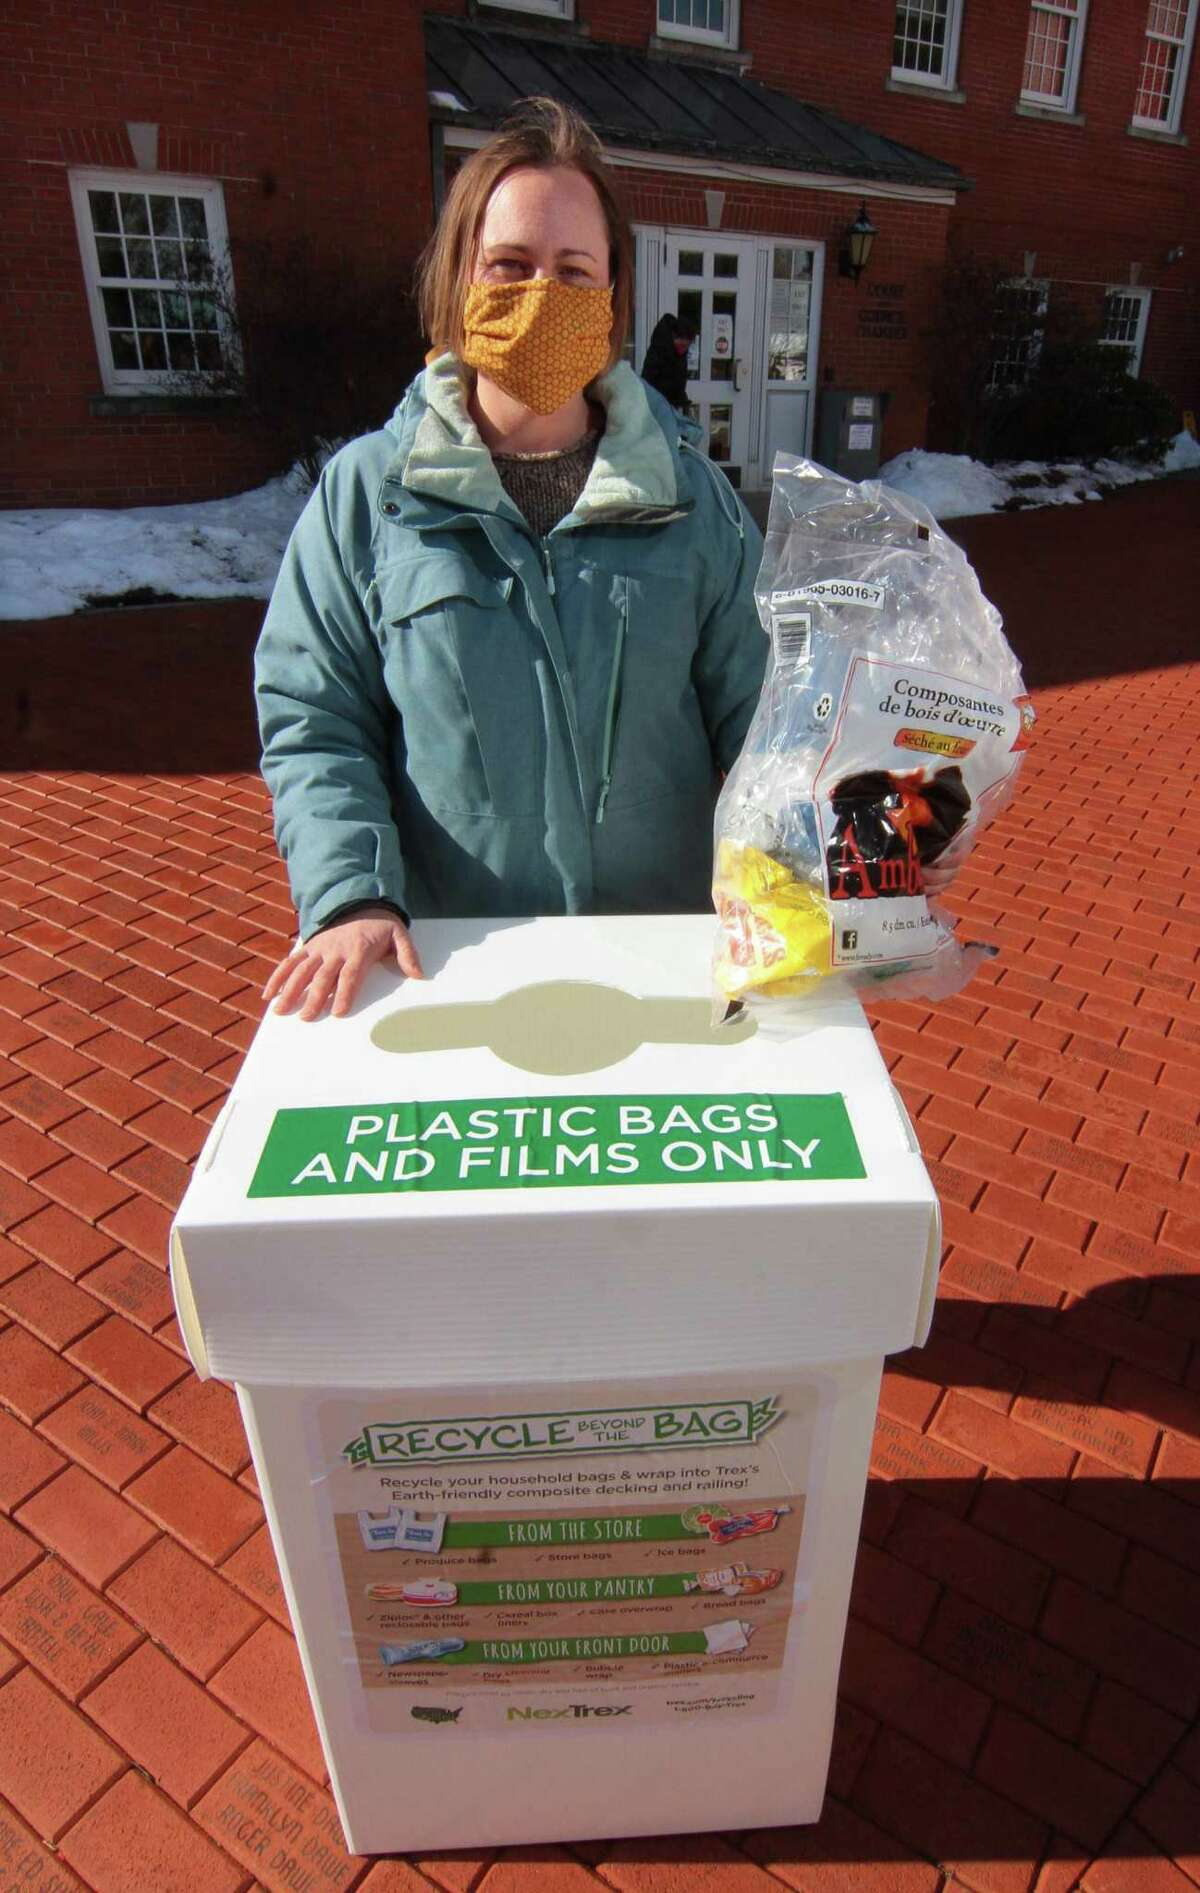 April Lang, with Sustainable Trumbull, poses with one of the group's recycling bins at Trumbull Town Hall in Trumbull, Conn., on Saturday Feb. 6, 2020. Lang is coordinating a recycling challenge to get plastic bags out of landfills and prevent them from becoming litter.